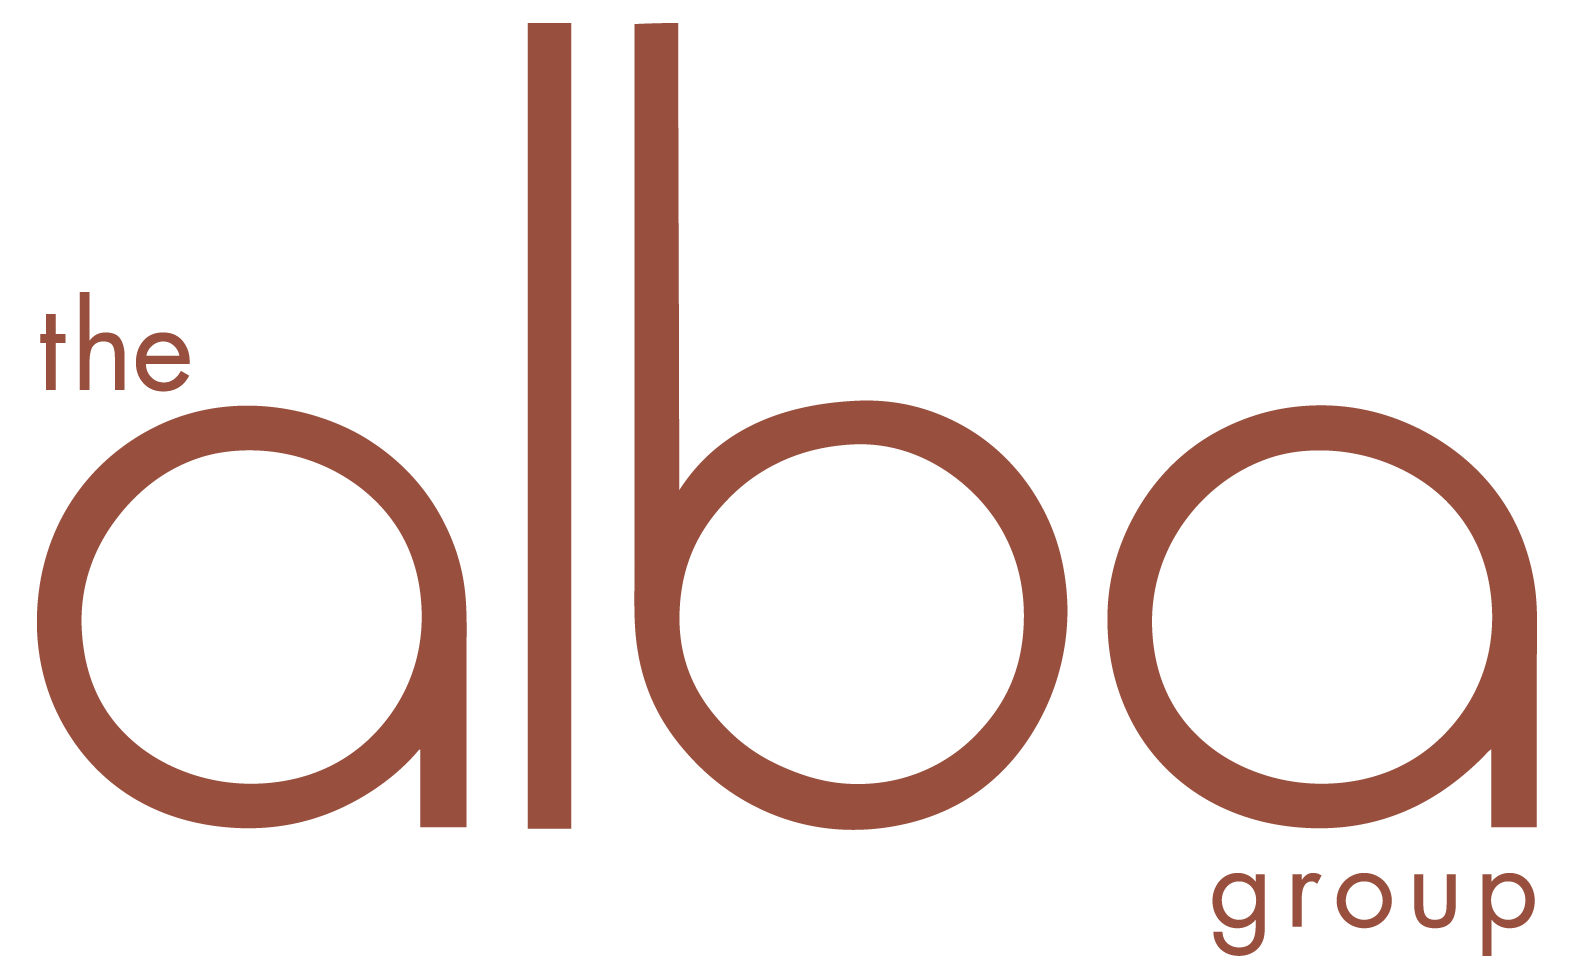 The Alba Group